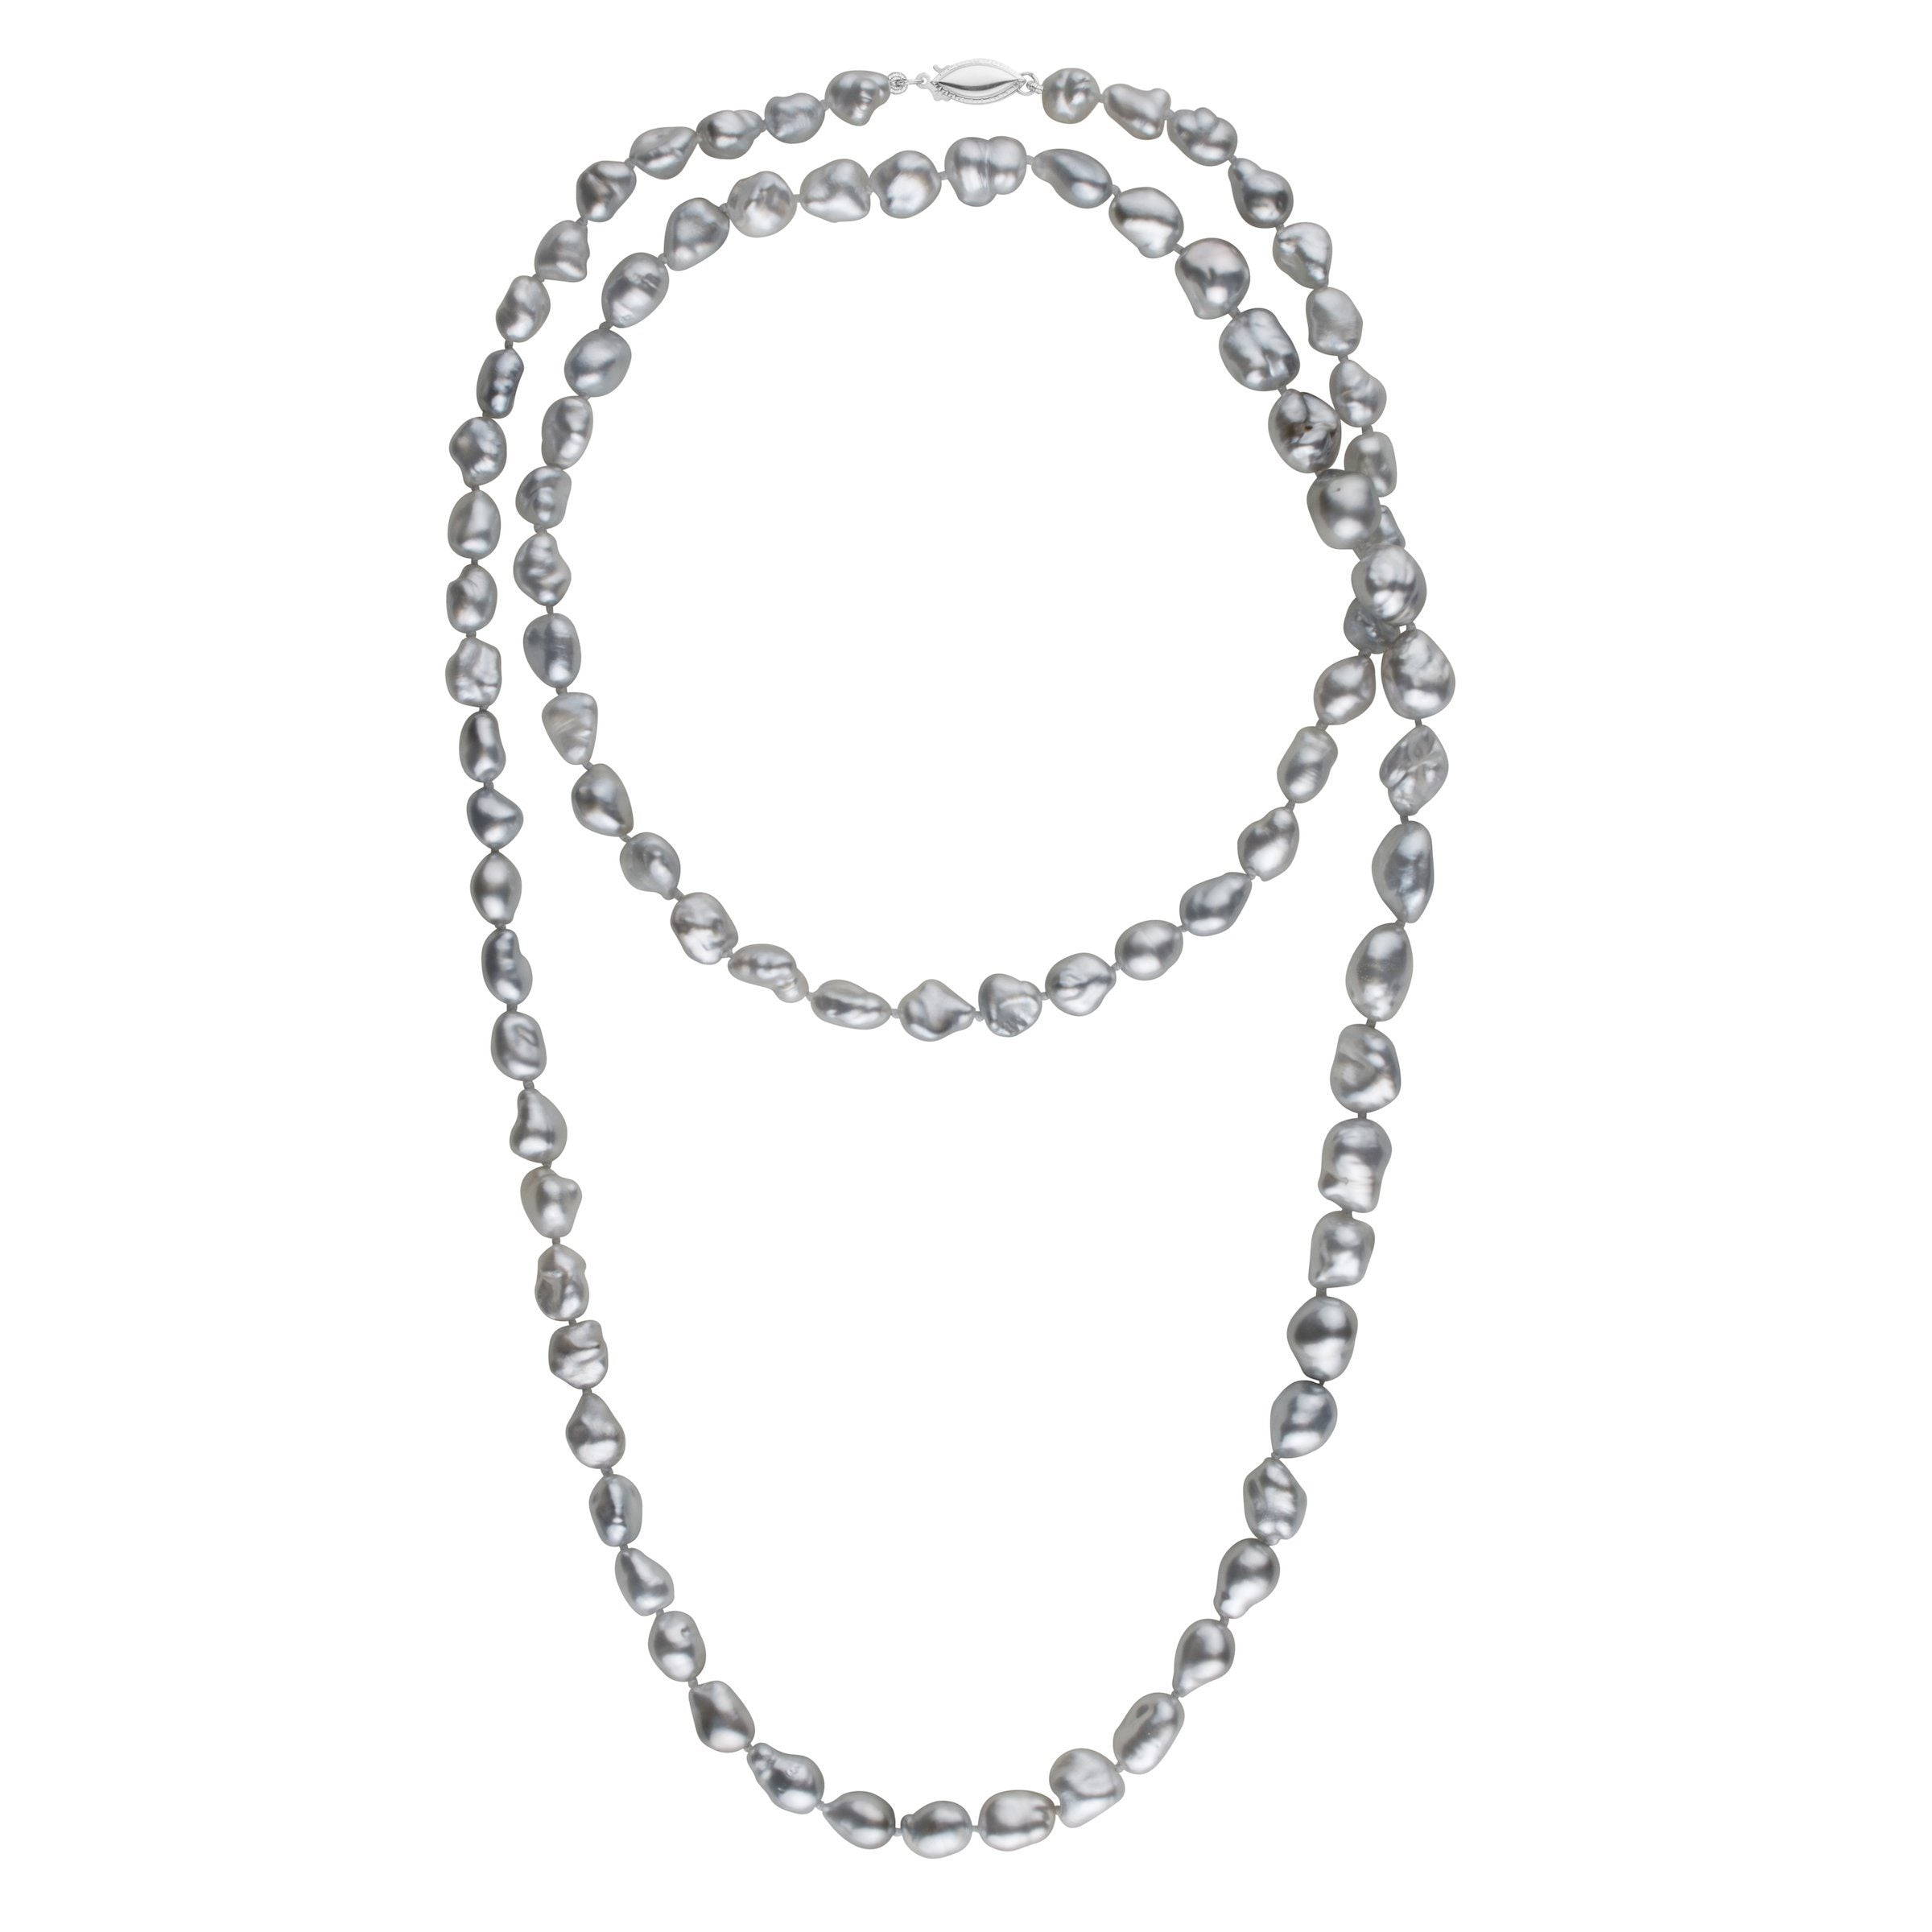 7.5-9.5 mm 35 Inch Light Silver Keshi Tahitian Pearl Necklace